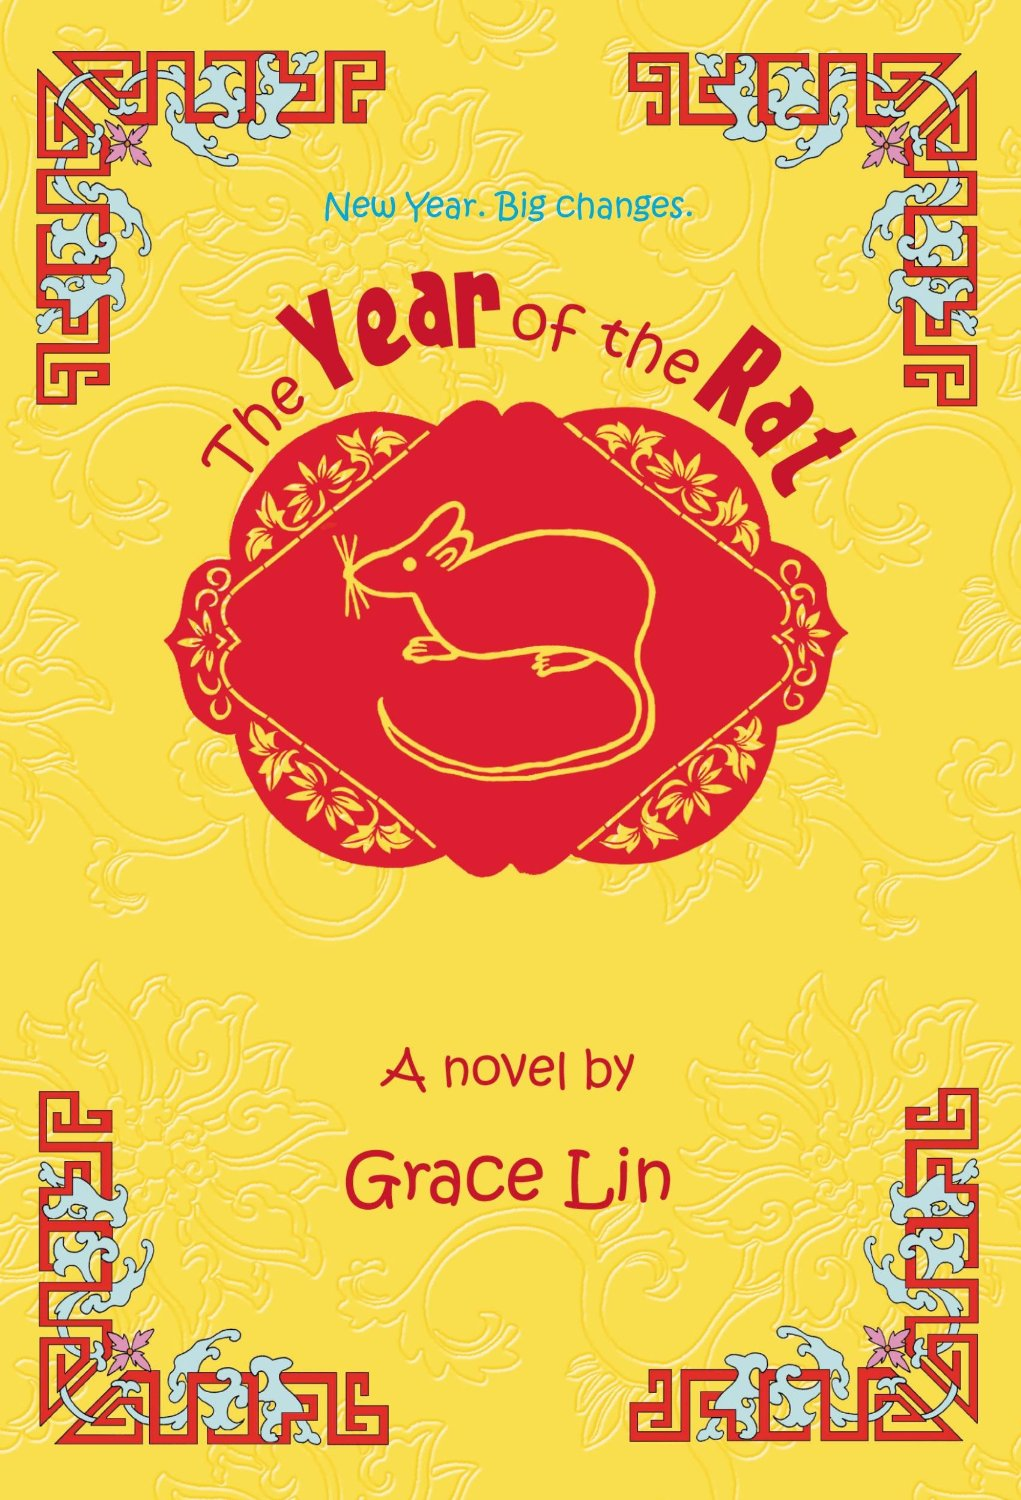 The Year of the Rat by Grace Lin [in Bloomsbury Review